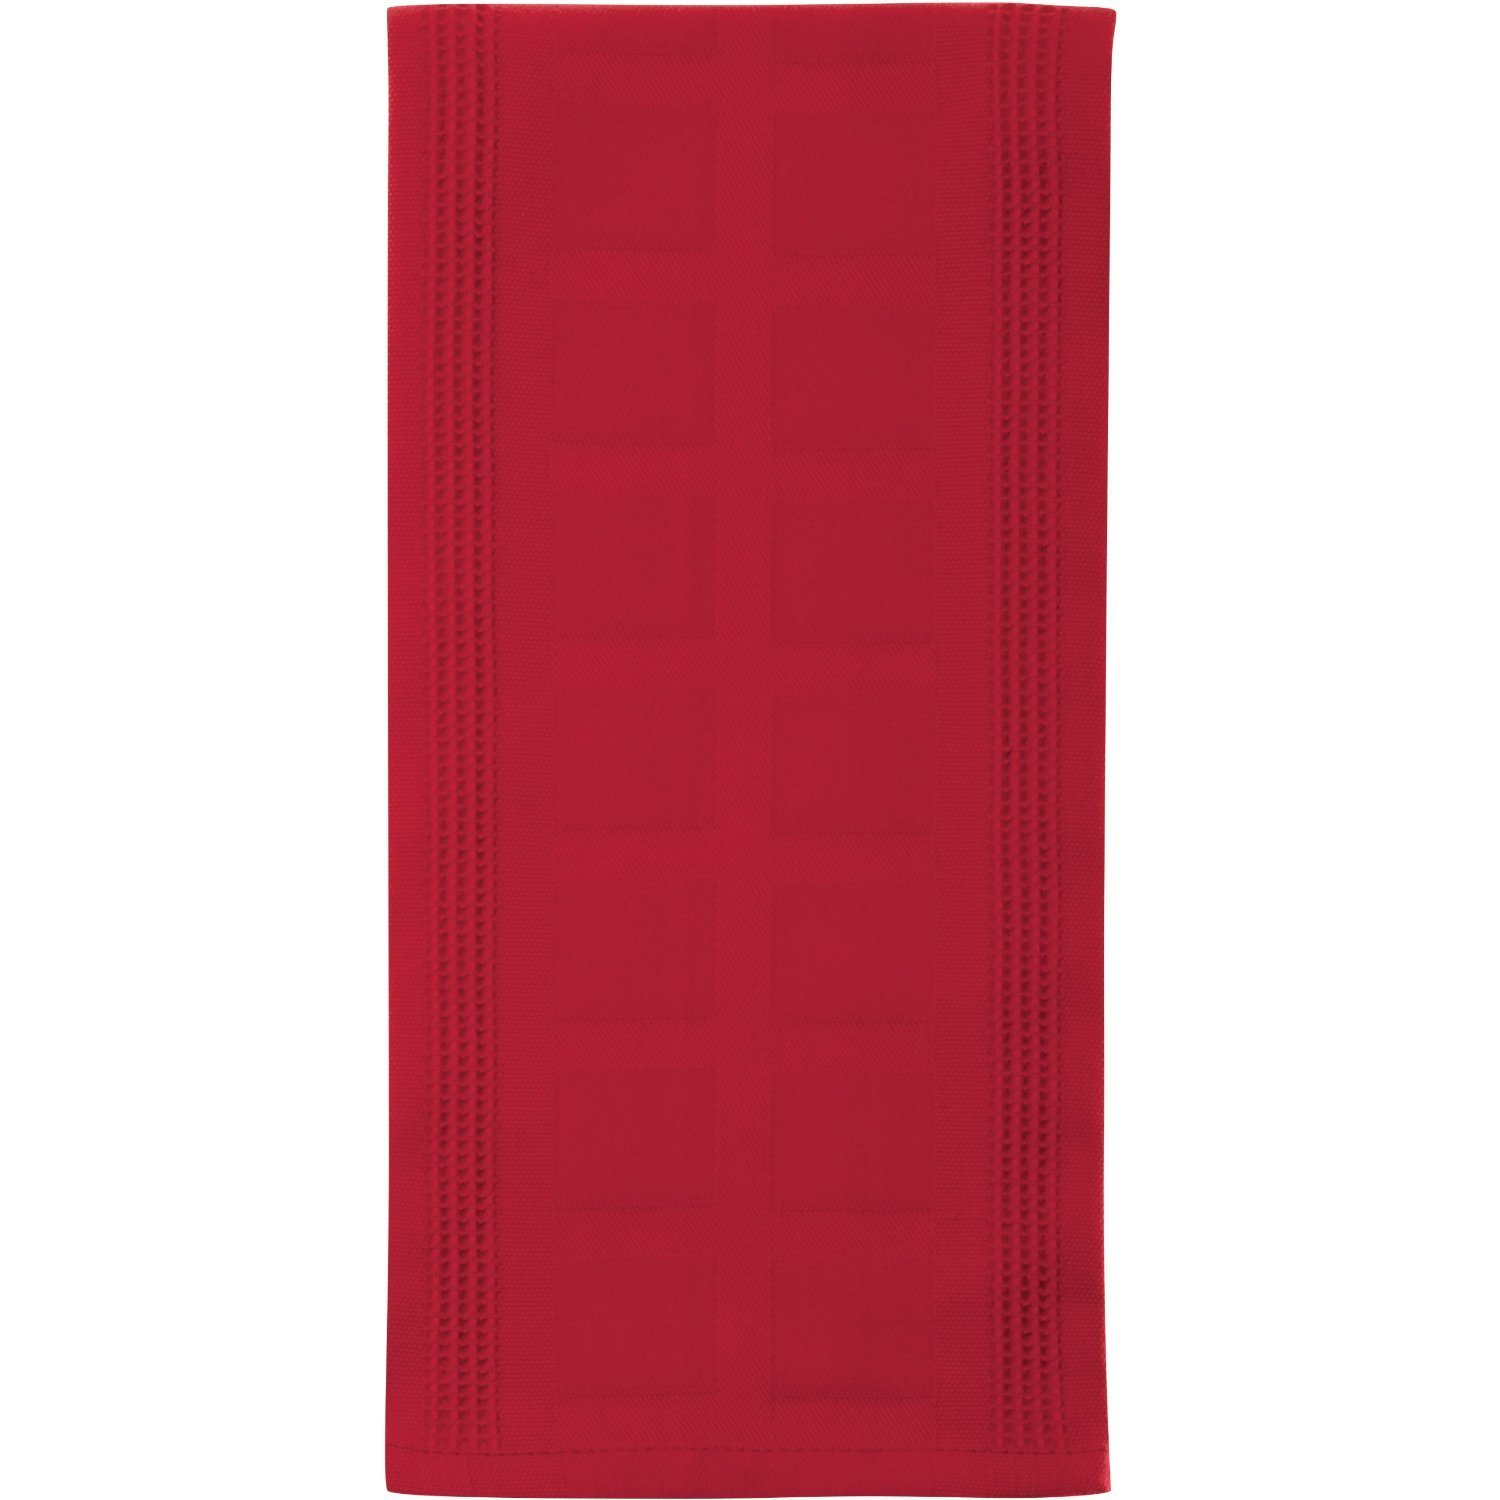 Red Extra Large Bamboo and Cotton Kitchen Towel BIGkitchen 02692RD